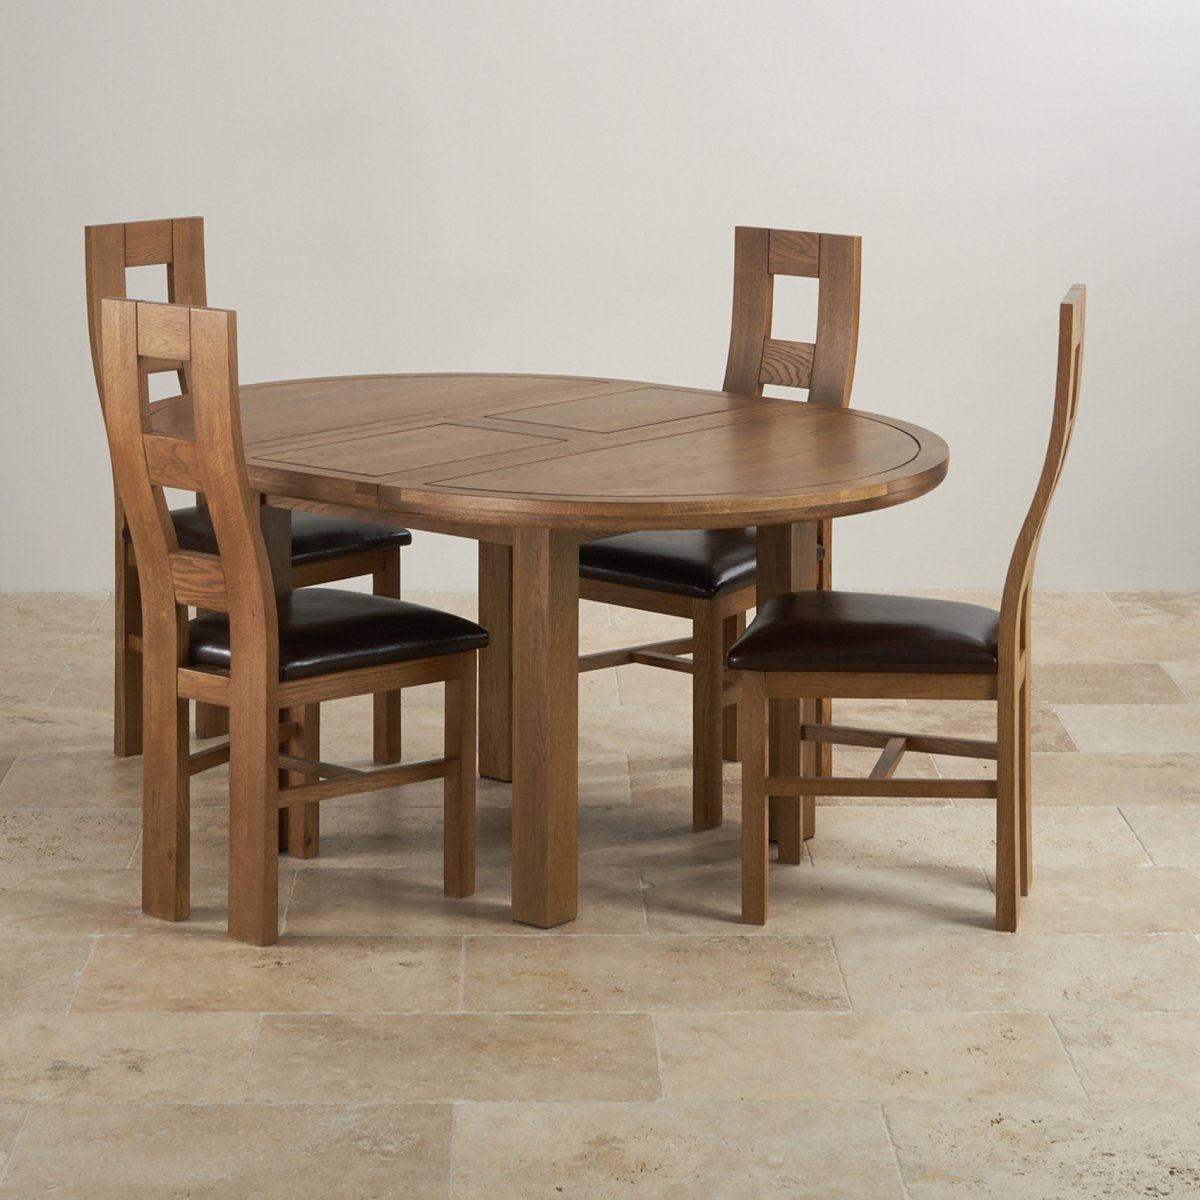 Knightsbridge 4ft Rustic Solid Oak Round Extending Dining Table + 4 Wave  Back Brown Leather Chairs Part 79